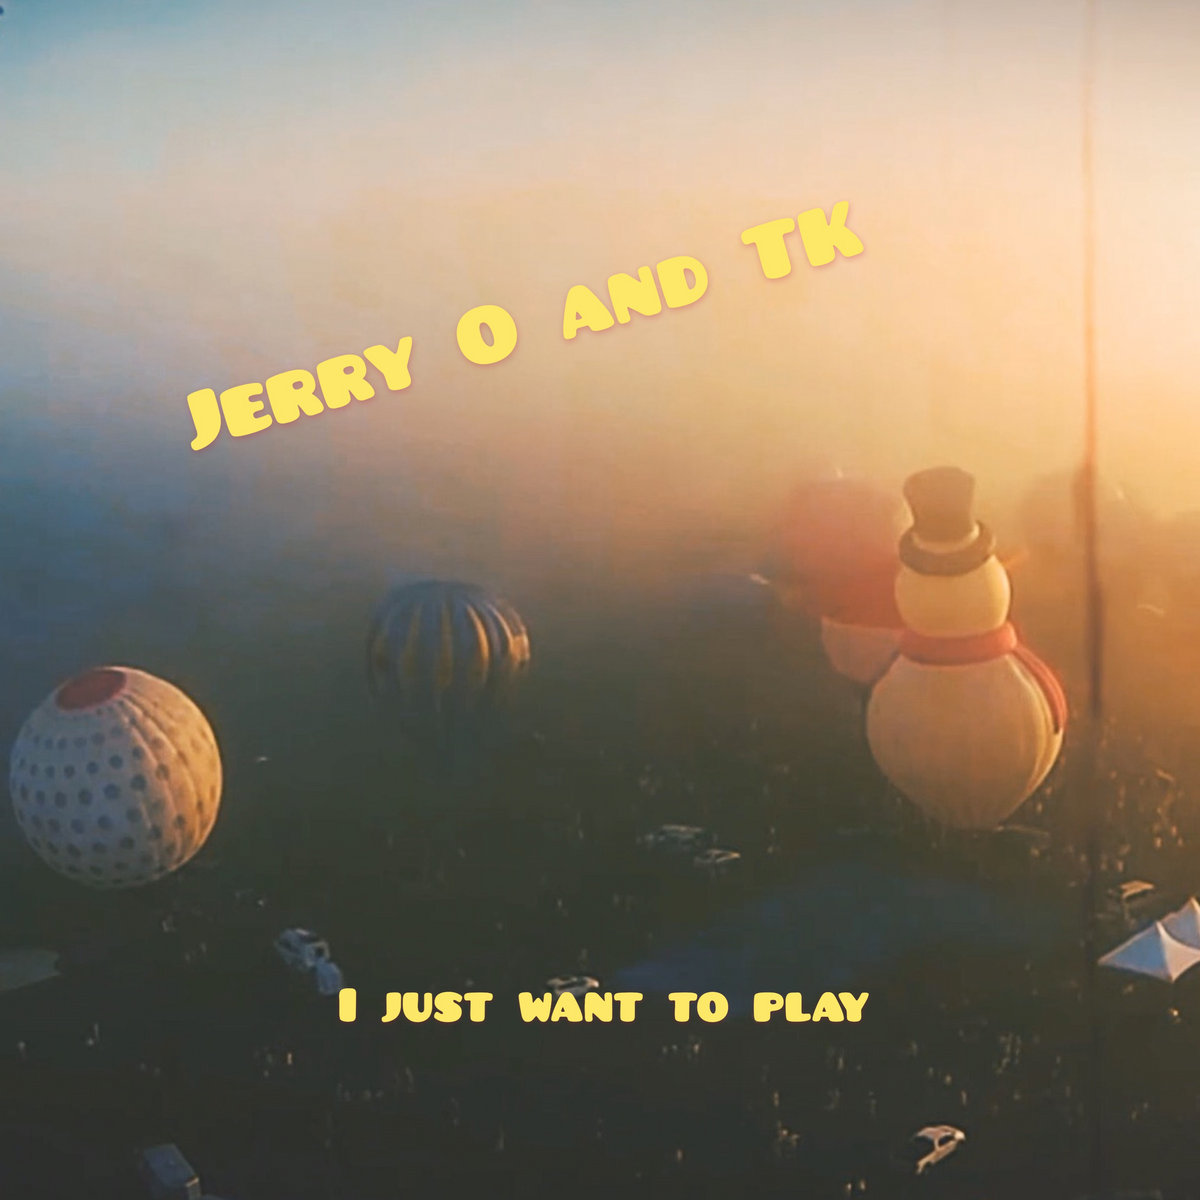 I Just Want To Play by Jerry Oliver